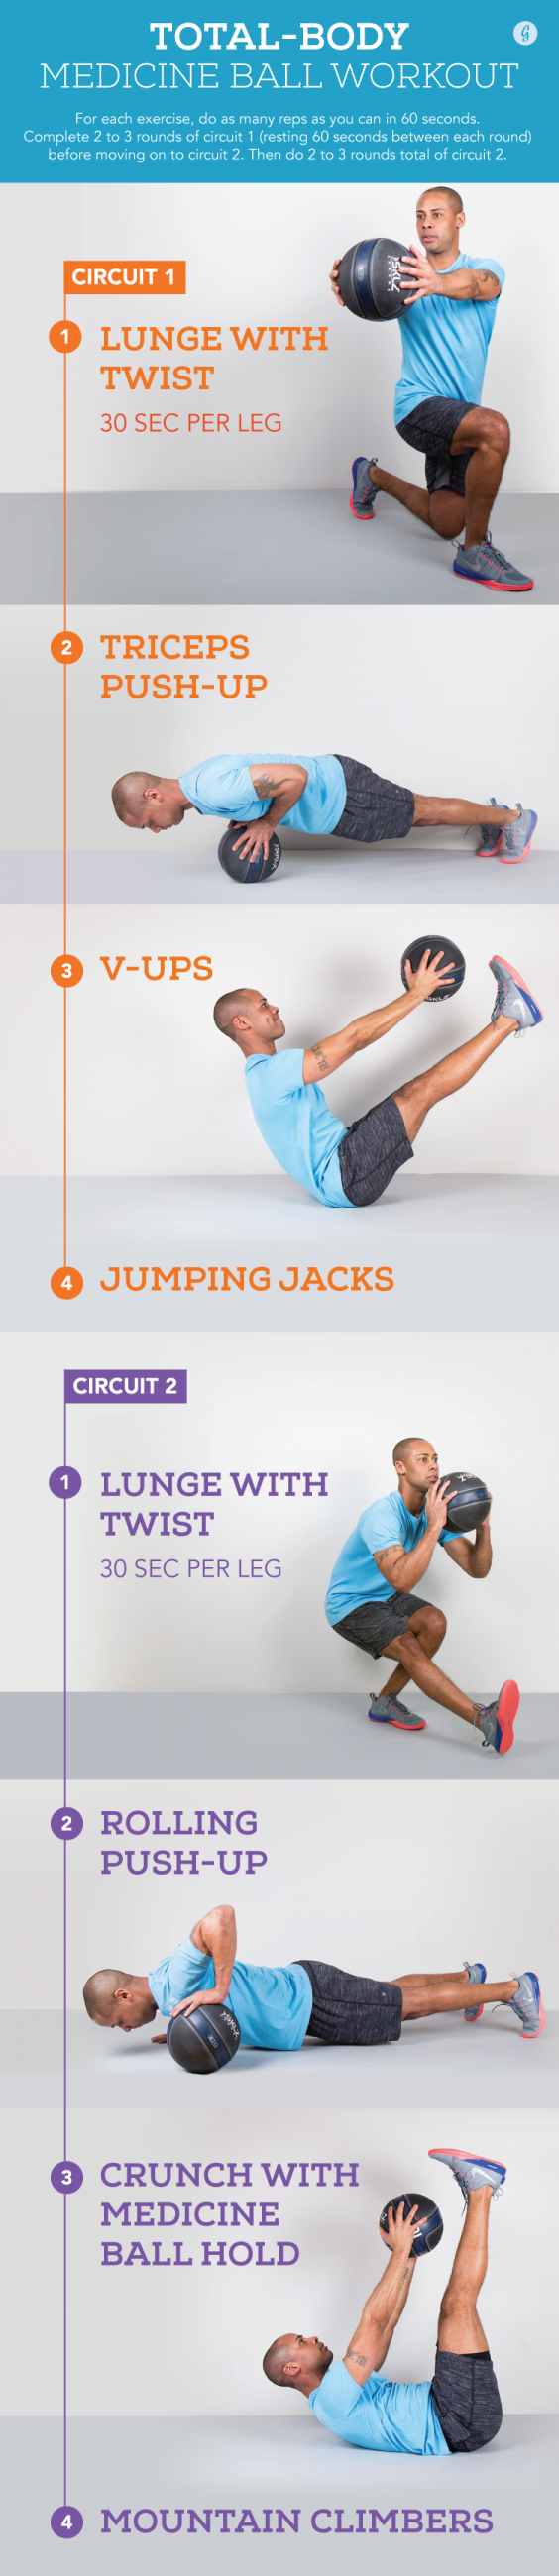 25 Medicine Ball Exercises for Your Abs, Arms, Shoulders